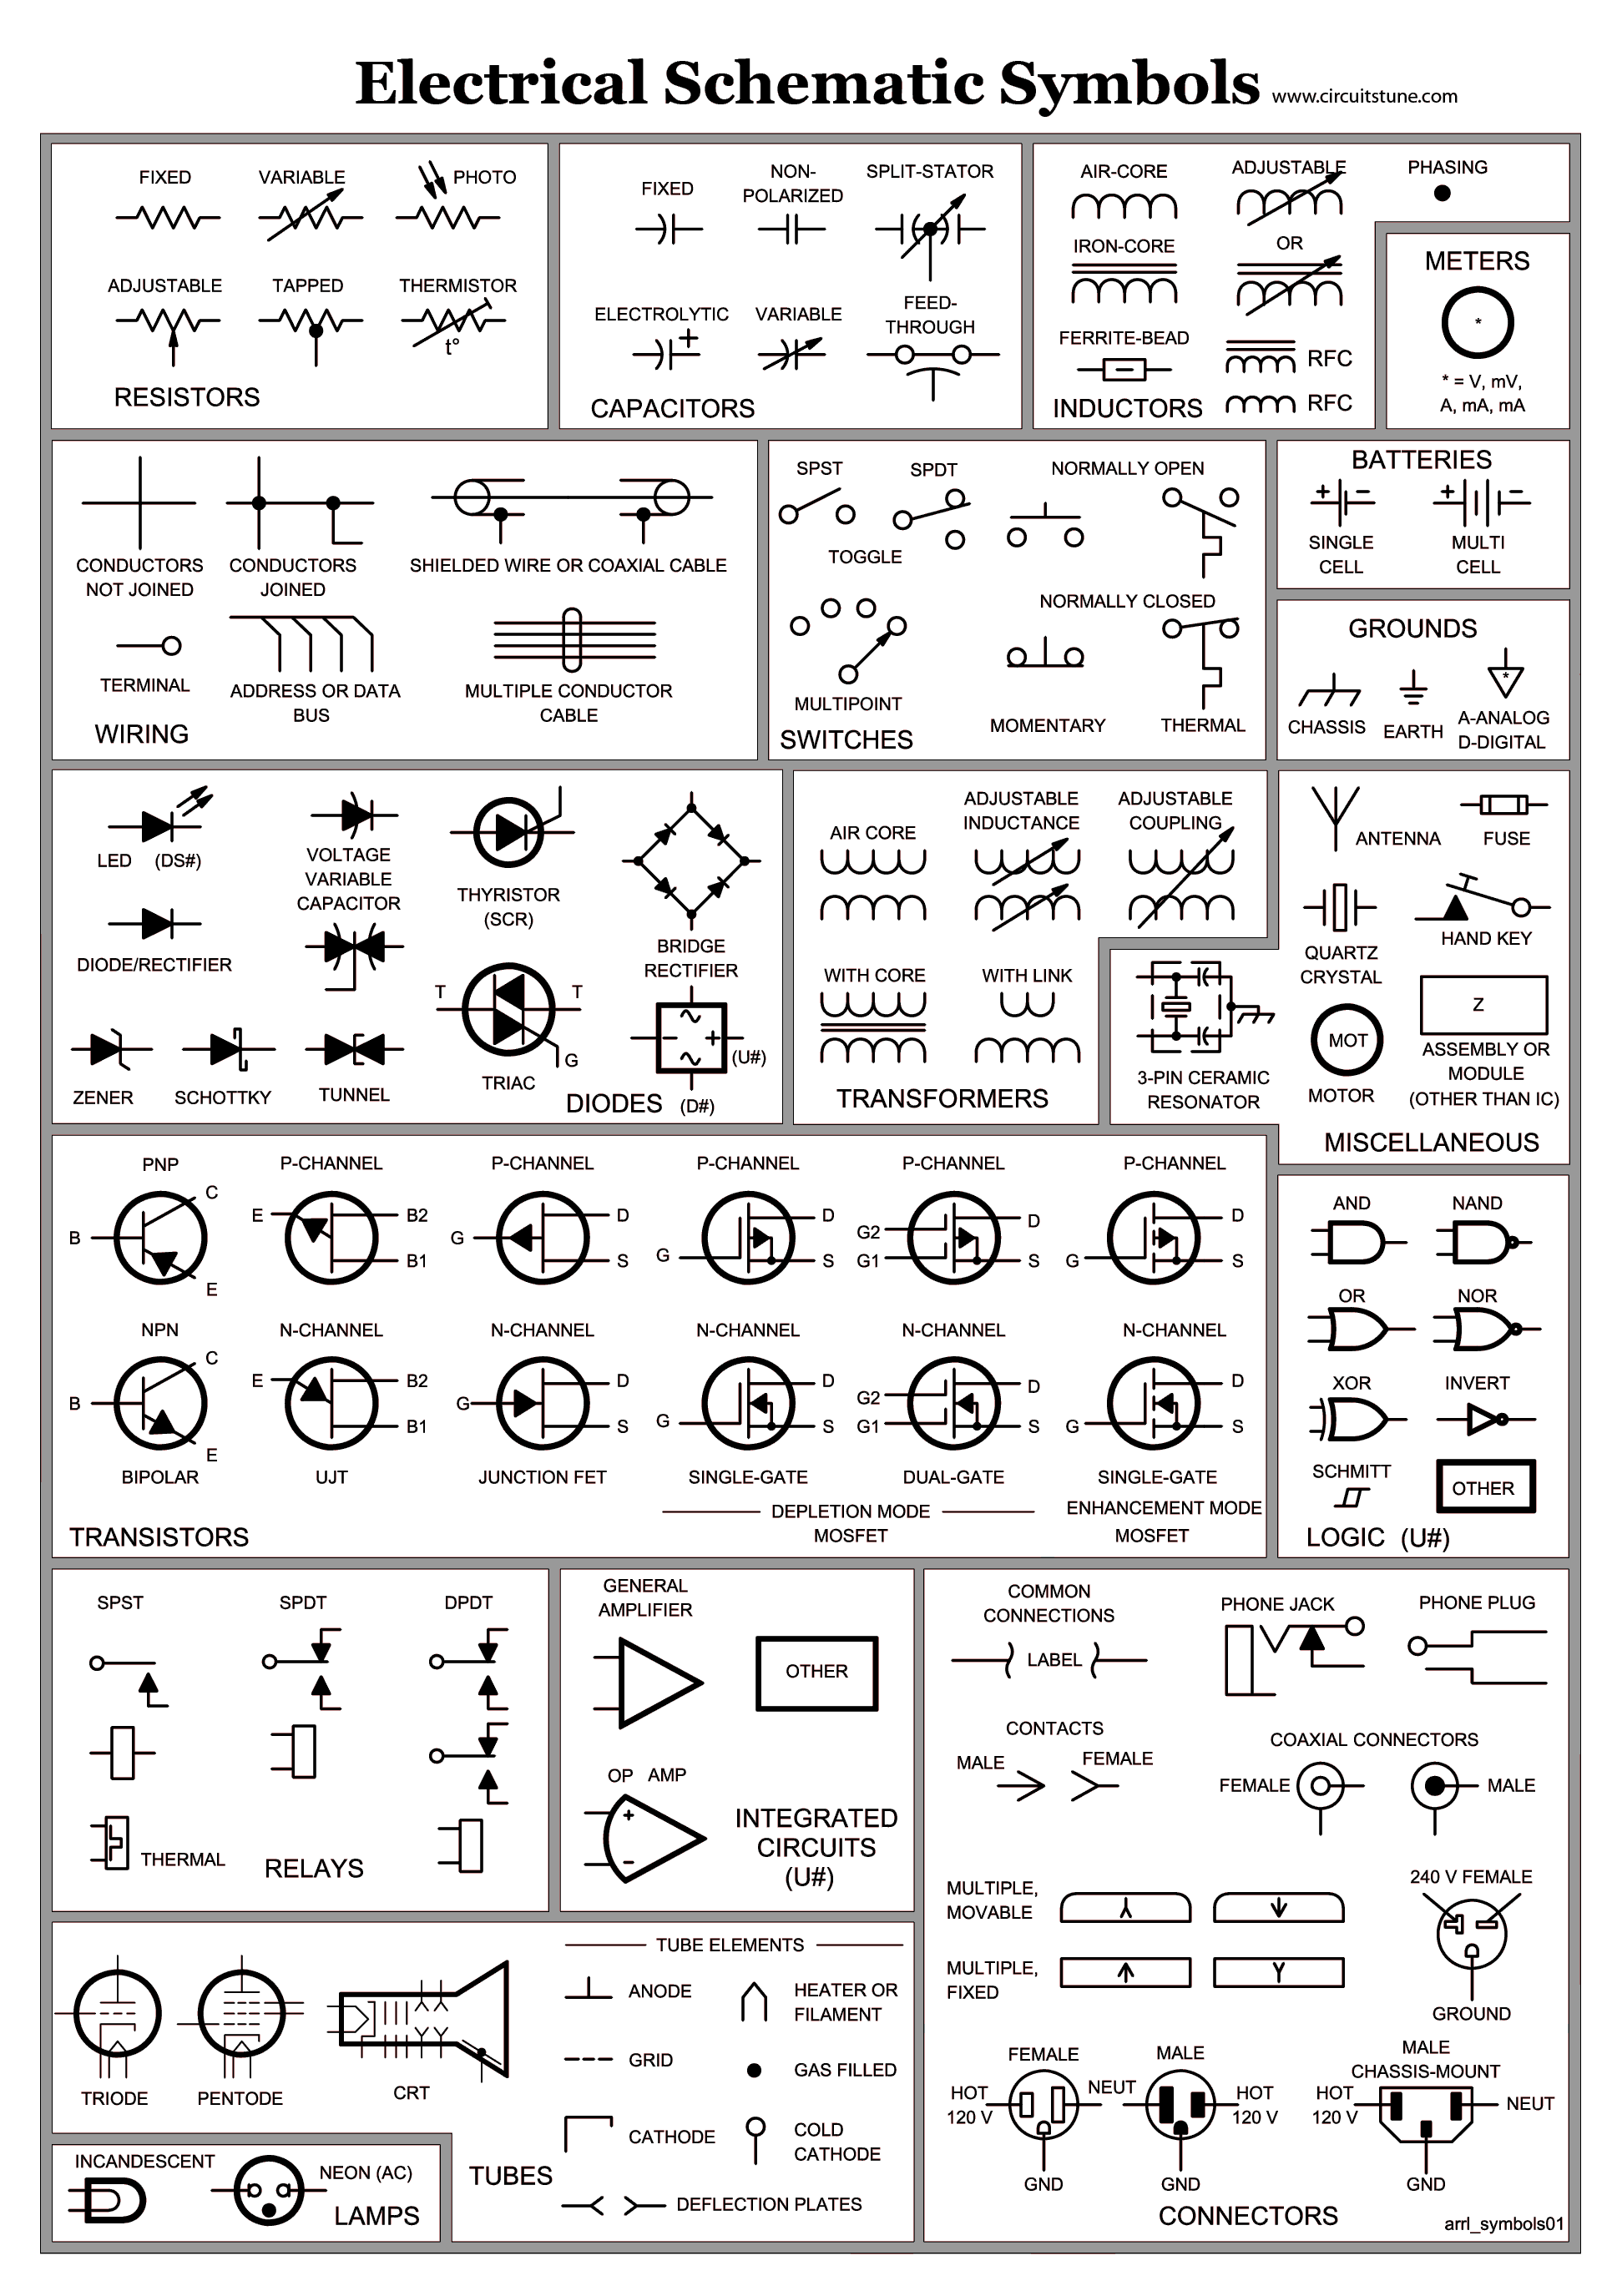 Ac Wiring Symbols Another Diagrams 110 Volt Diagram For Electrical Schematic Skinsquiggles Pinterest Rh Com Colors